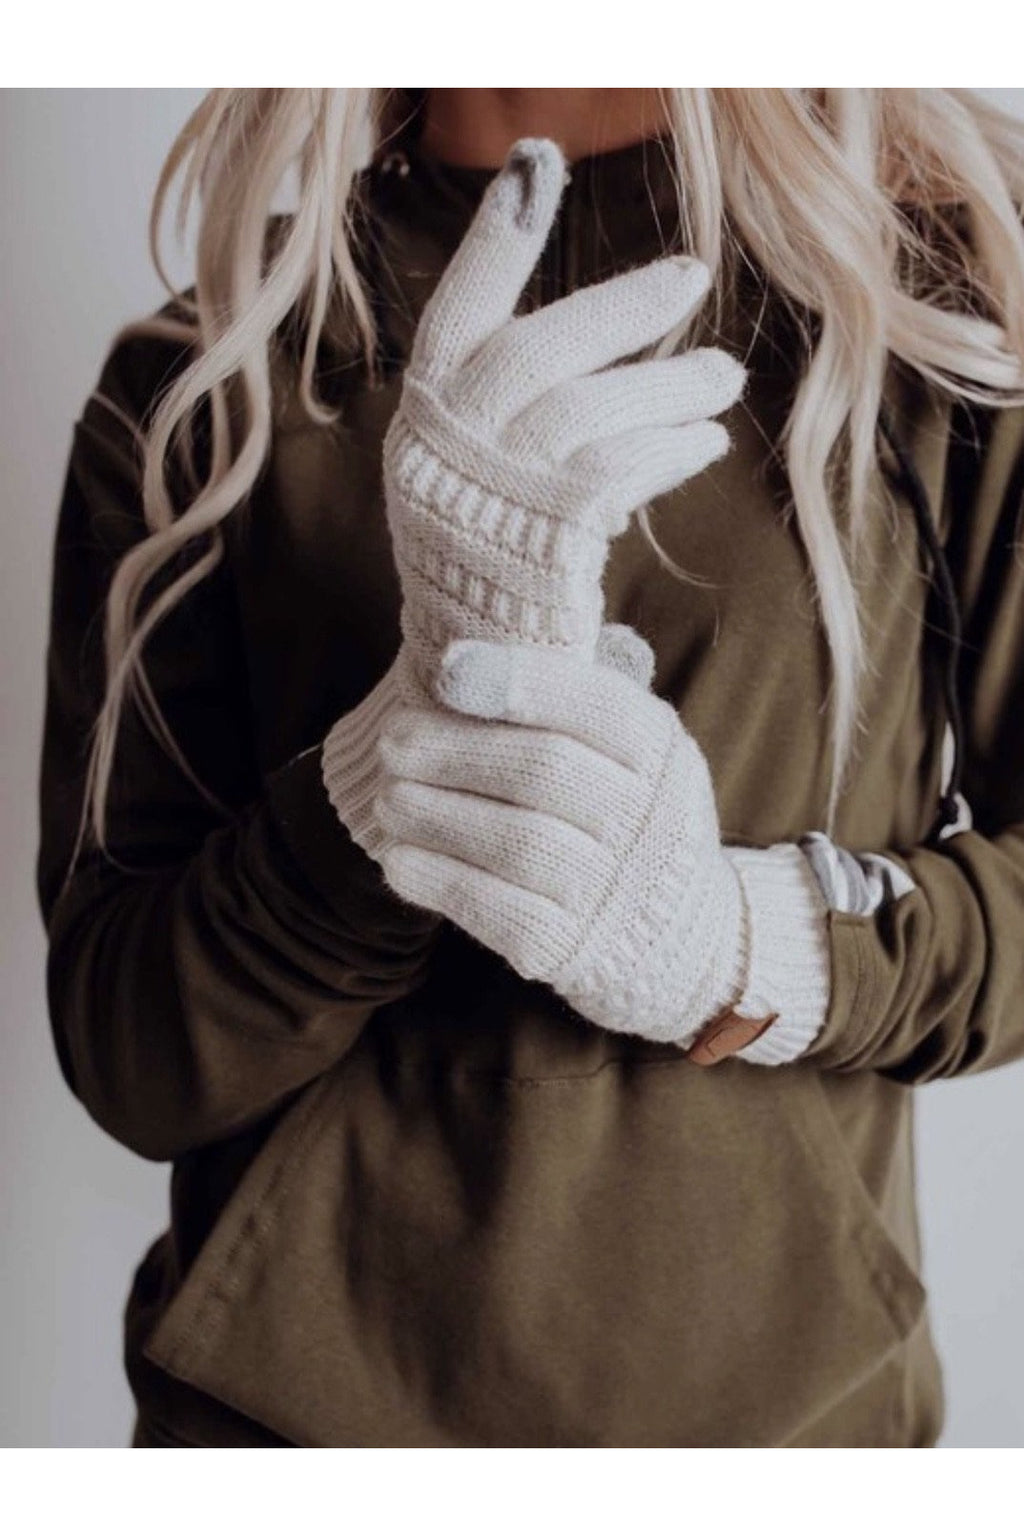 Maggie Gloves in Ivory